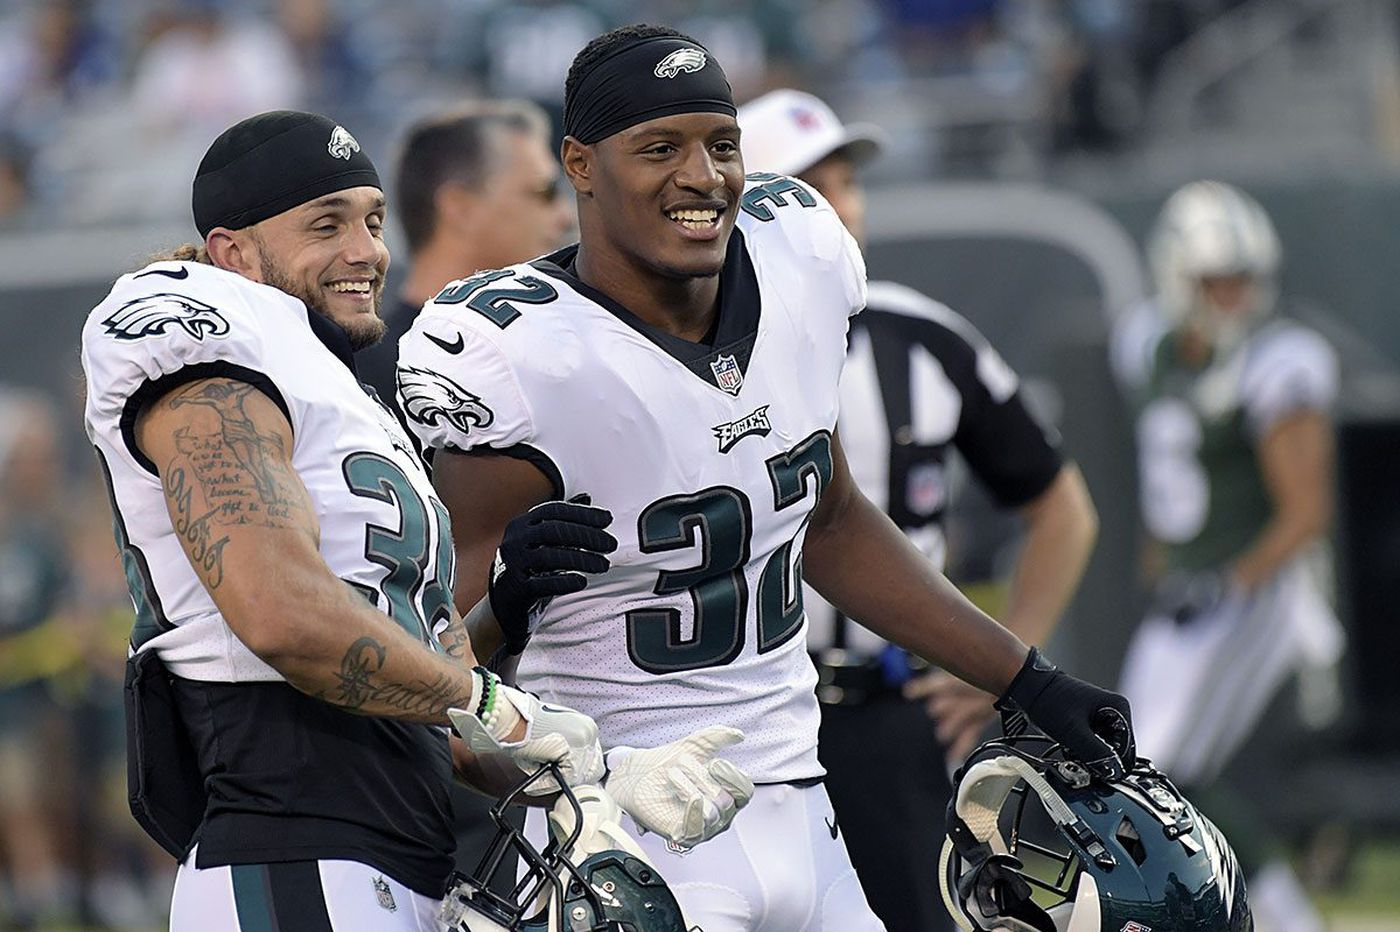 Eagles' Grymes searched for inside fit, but came up short